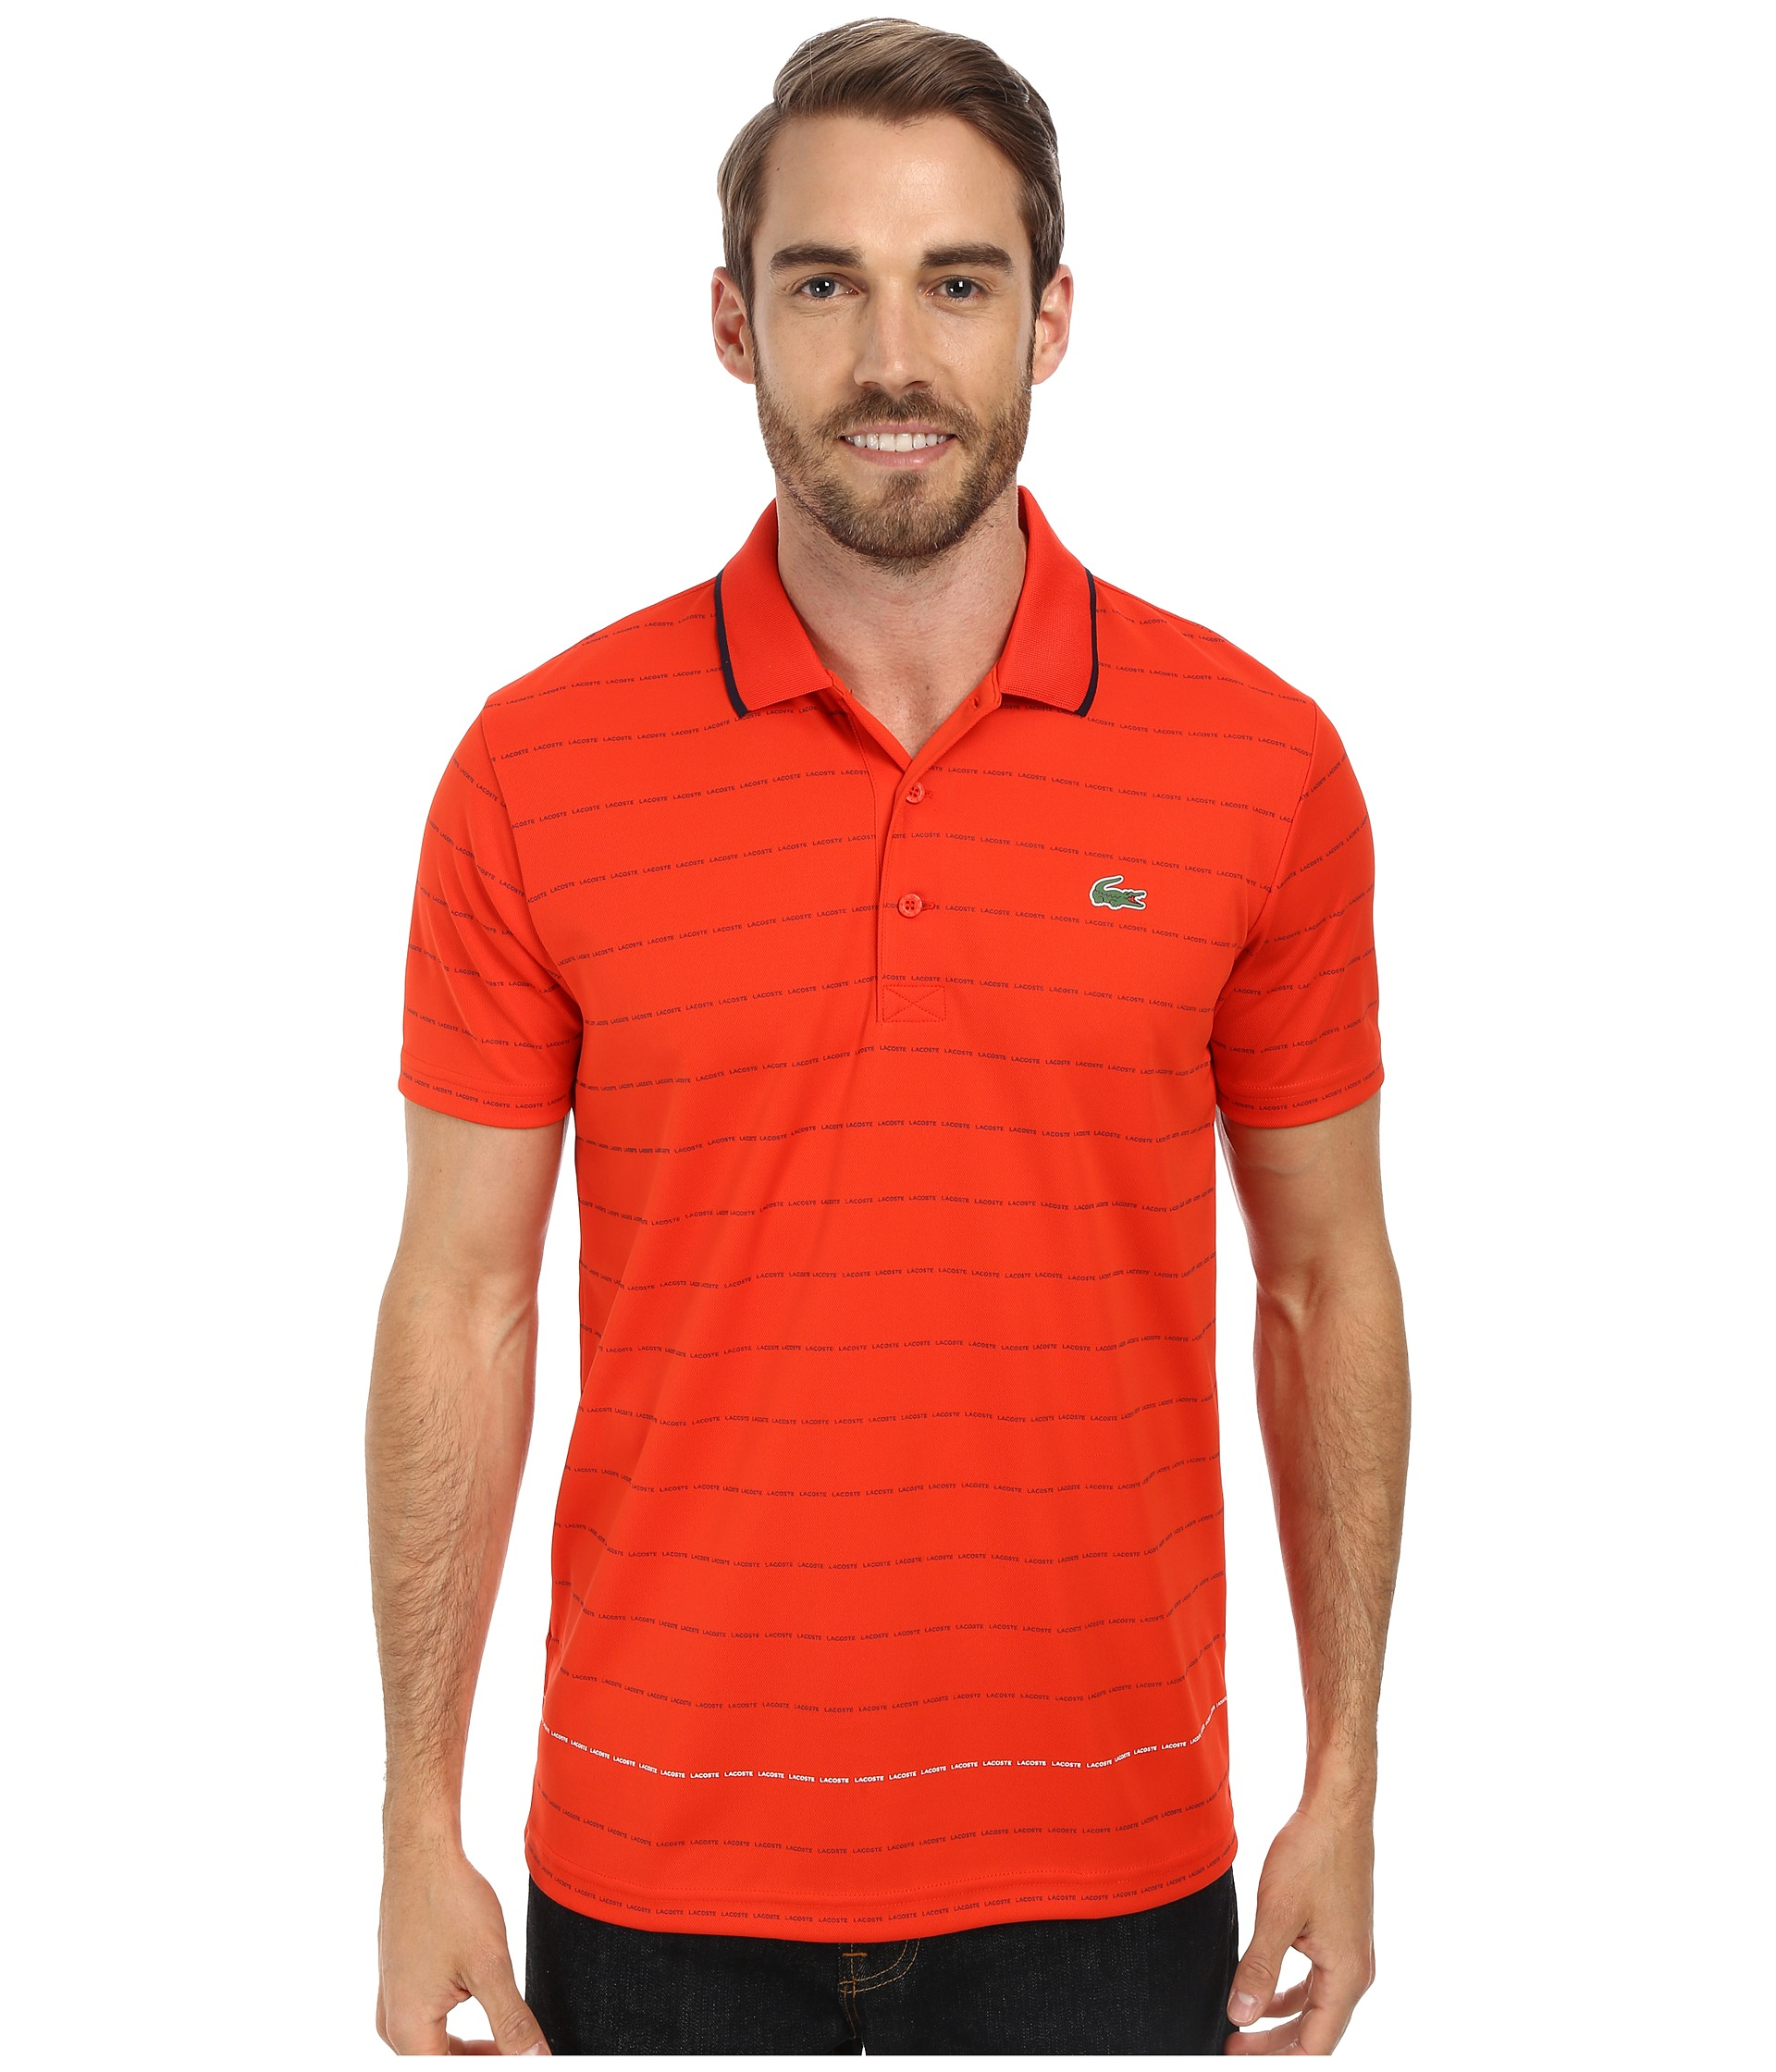 Lyst lacoste sport pique ultra dry stripe polo in red for Lacoste stripe pique polo shirt